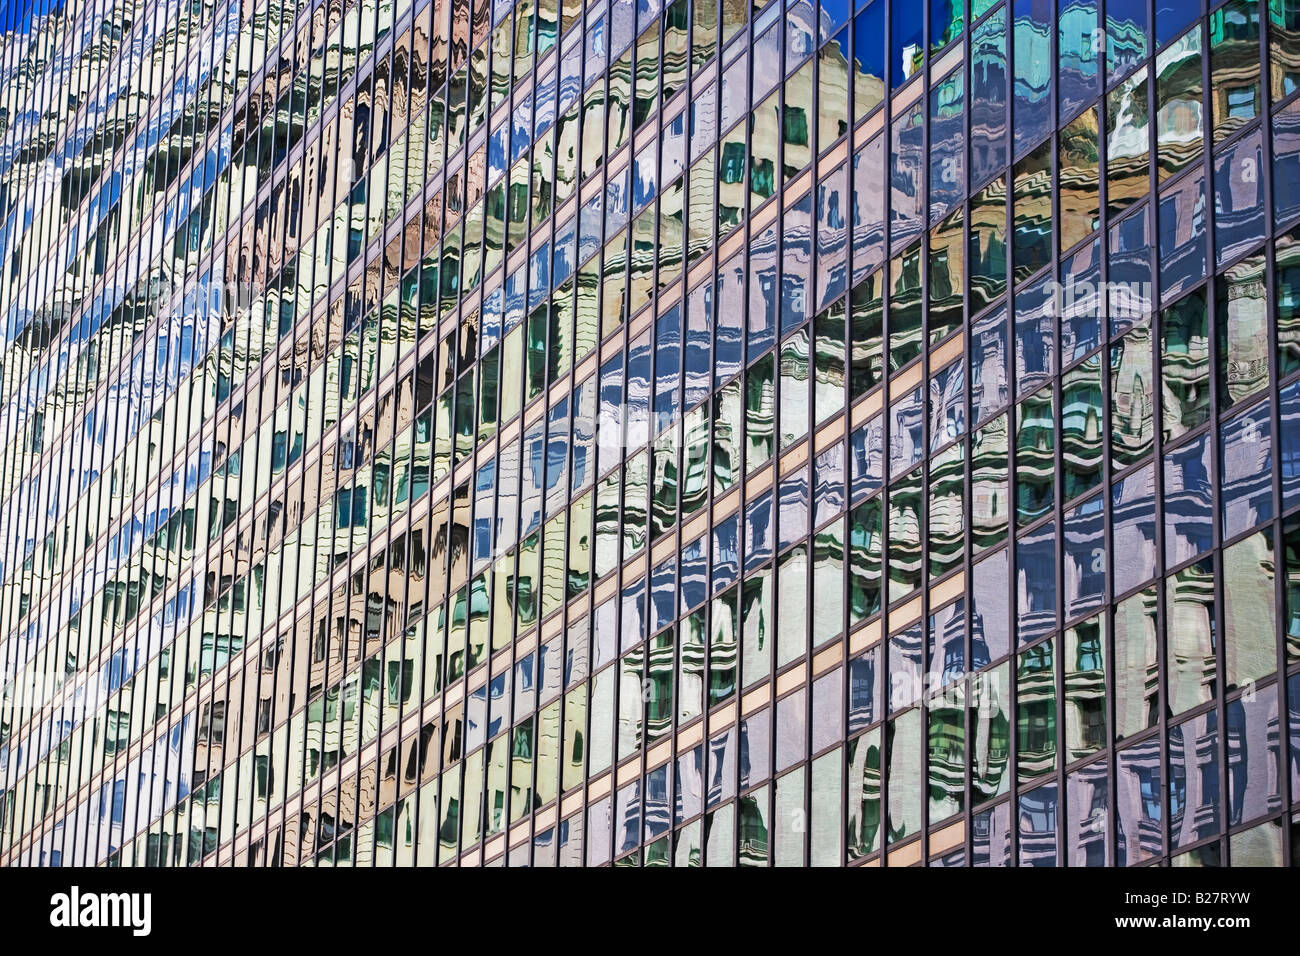 Low angle view of high rises, New York City, New York, United States - Stock Image